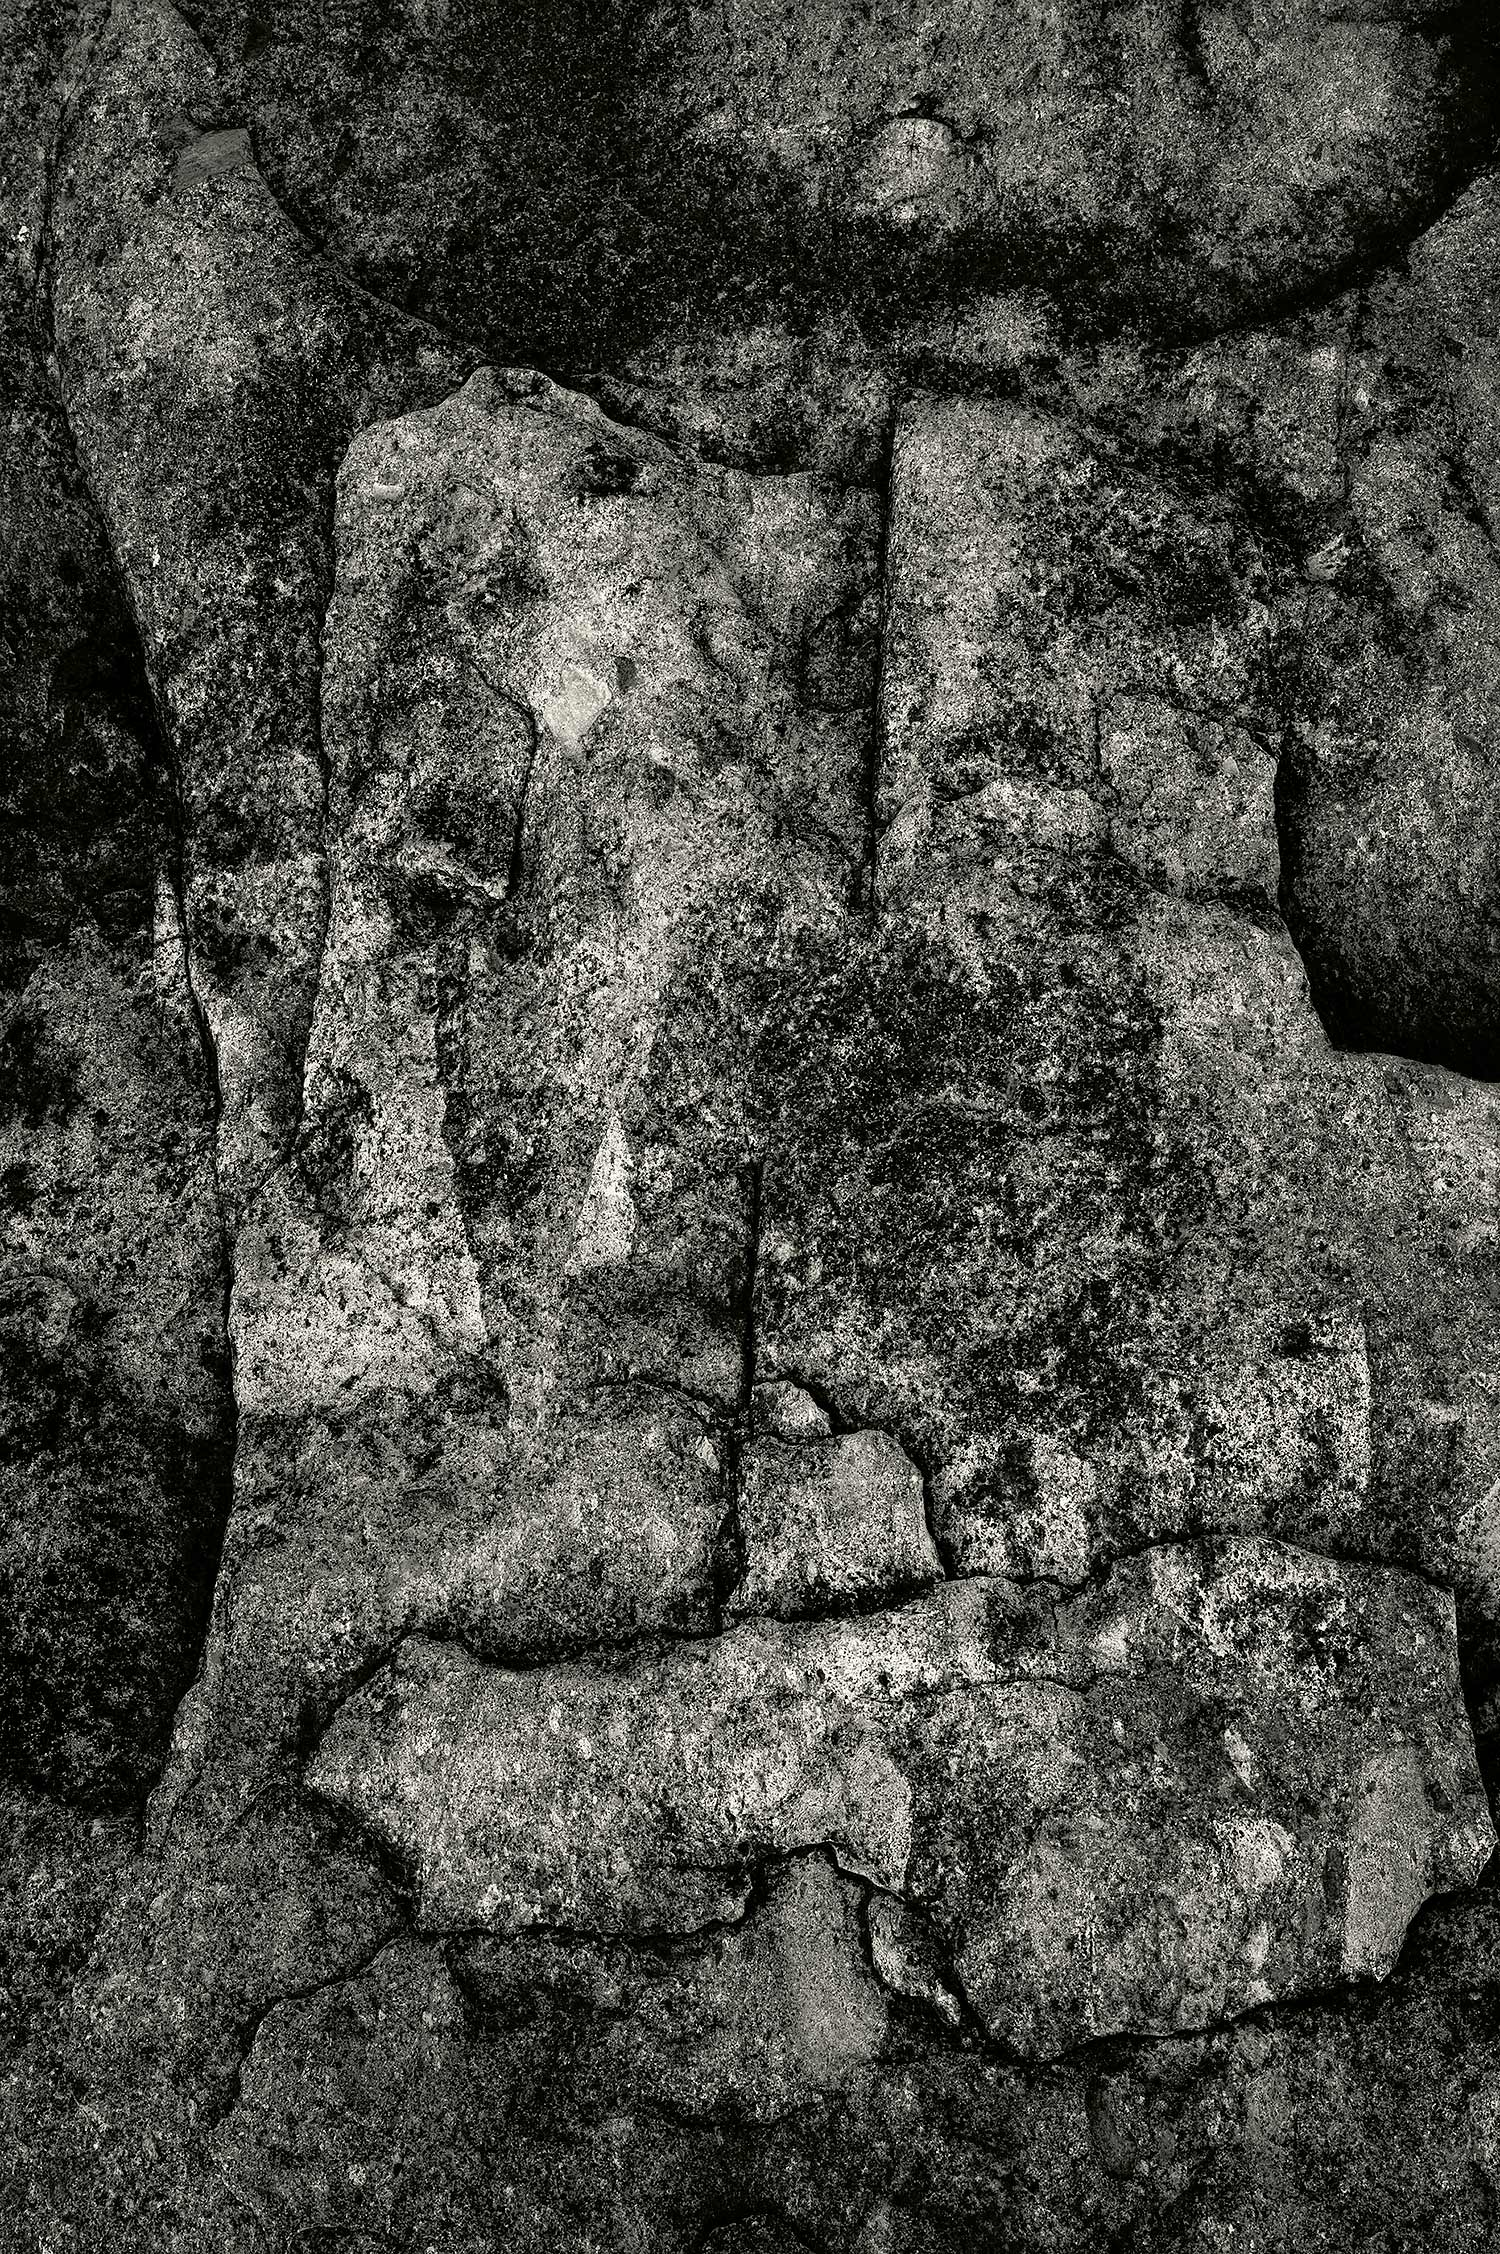 Rock, Seawall, Maine, 2013